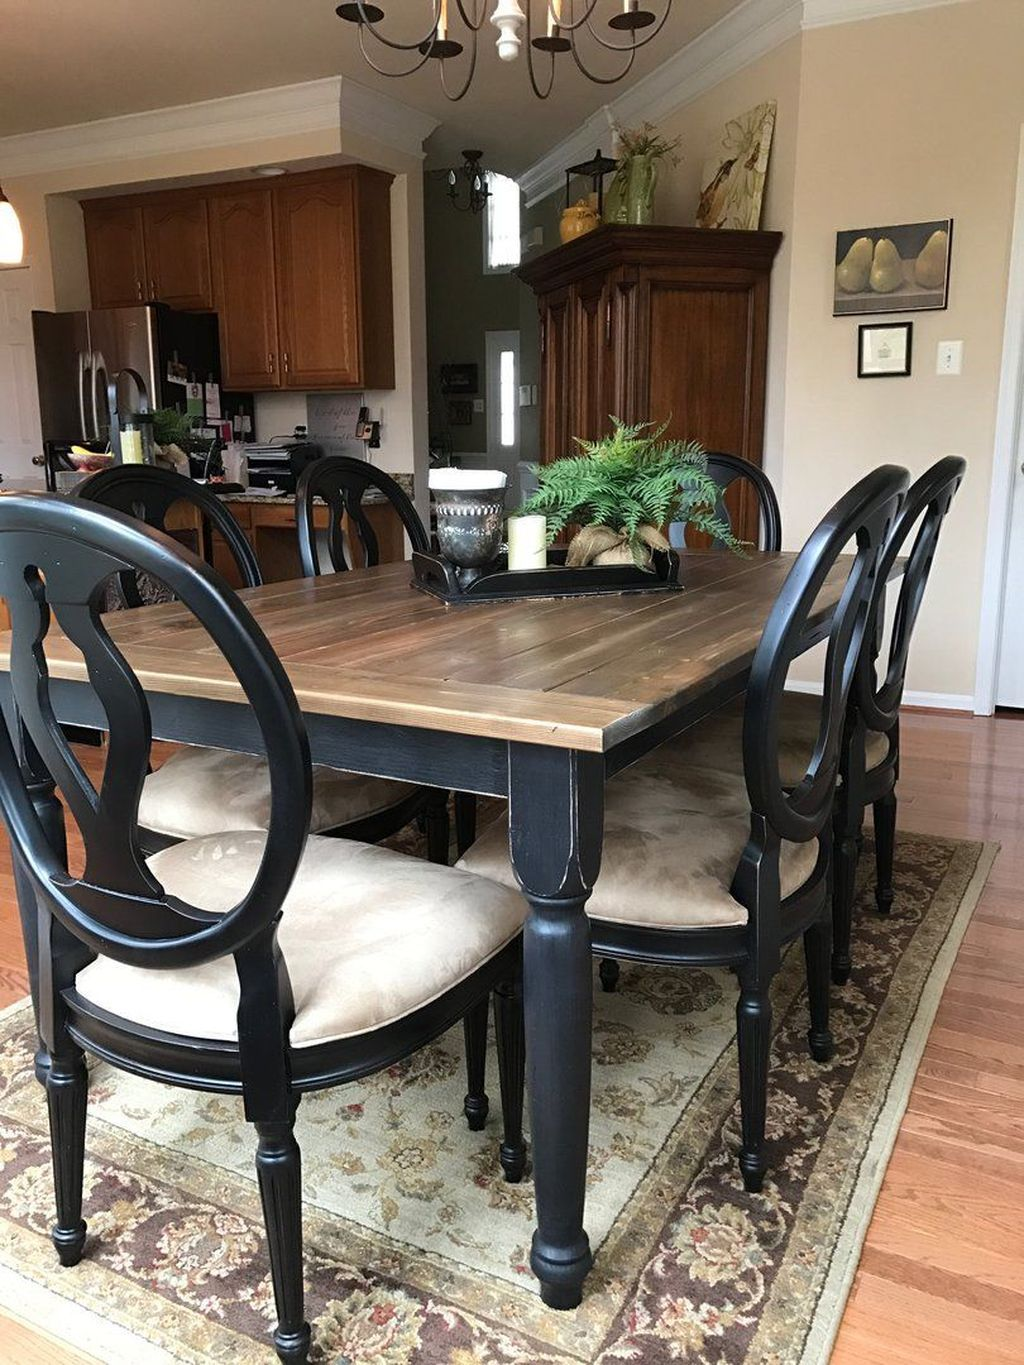 37 fascinating farmhouse dining table design ideas in 2020